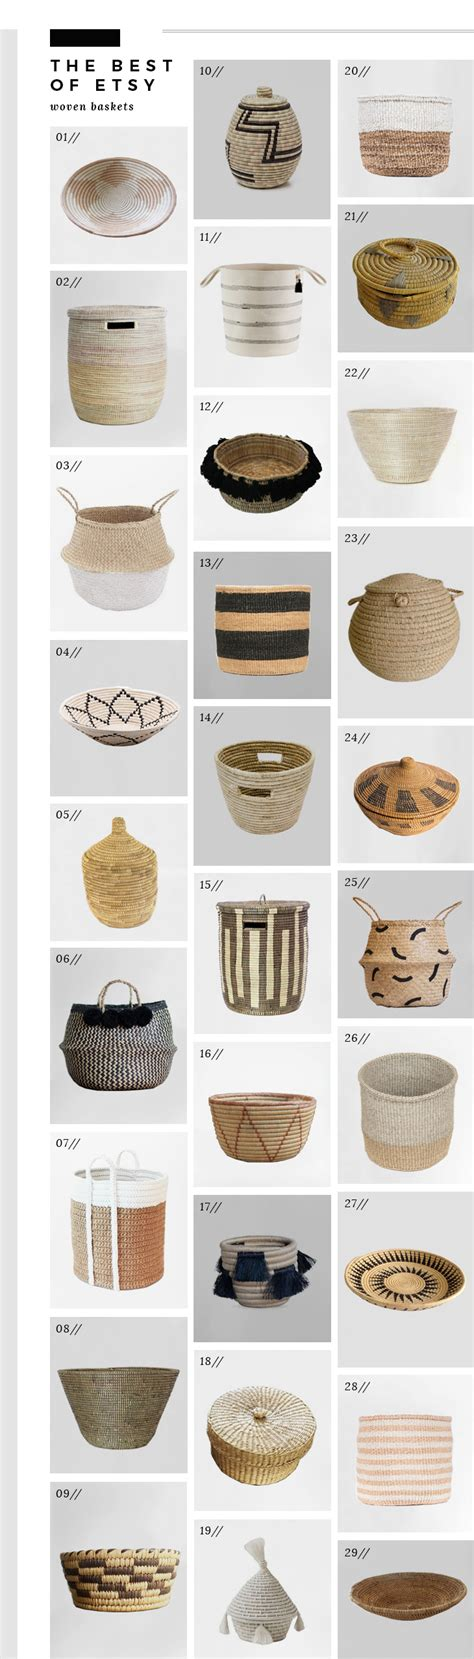 best etsy best of etsy woven baskets room for tuesday